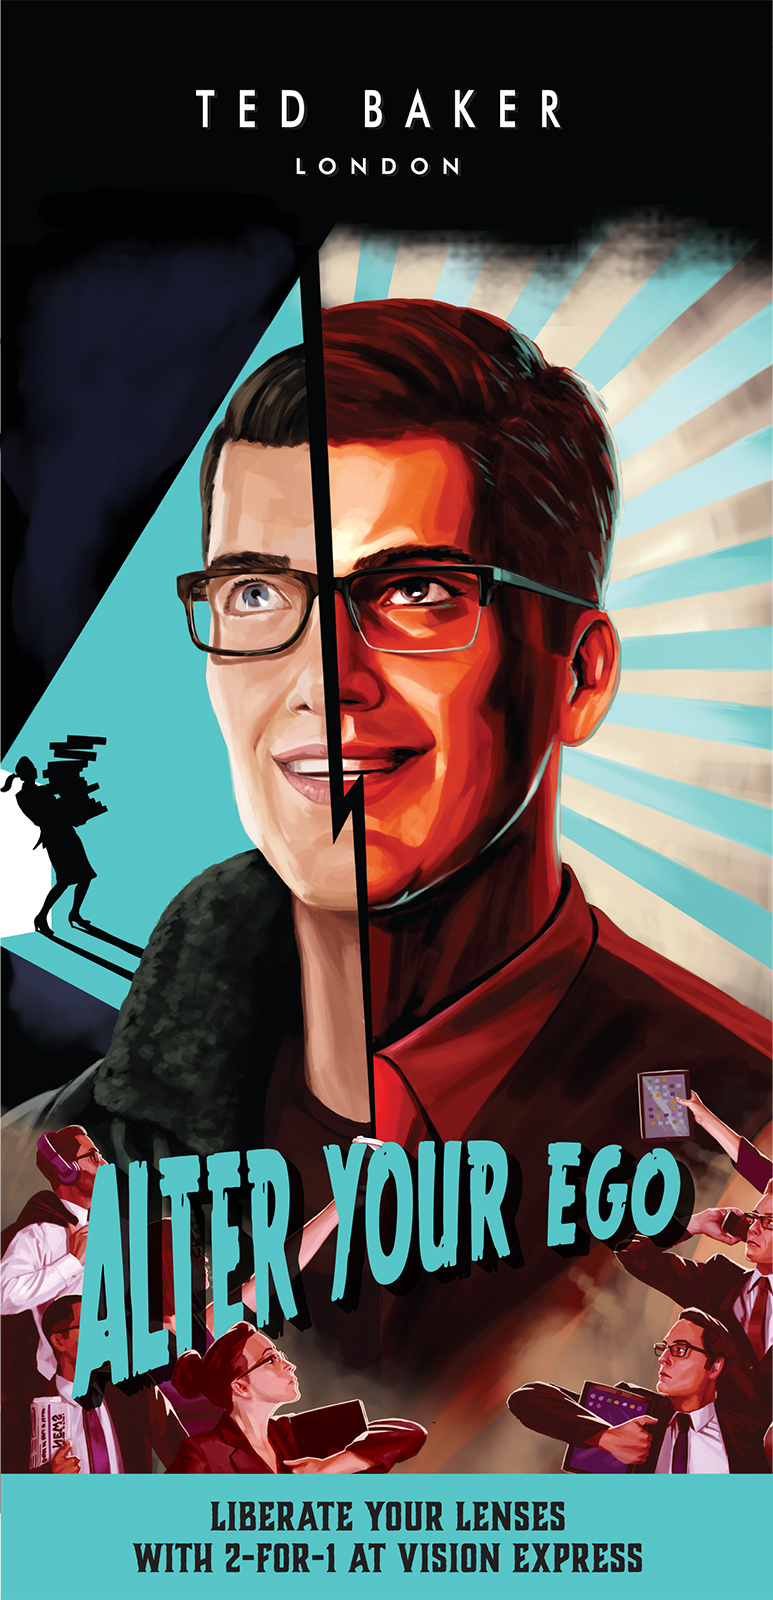 Alter Your Ego Man / Ted Baker